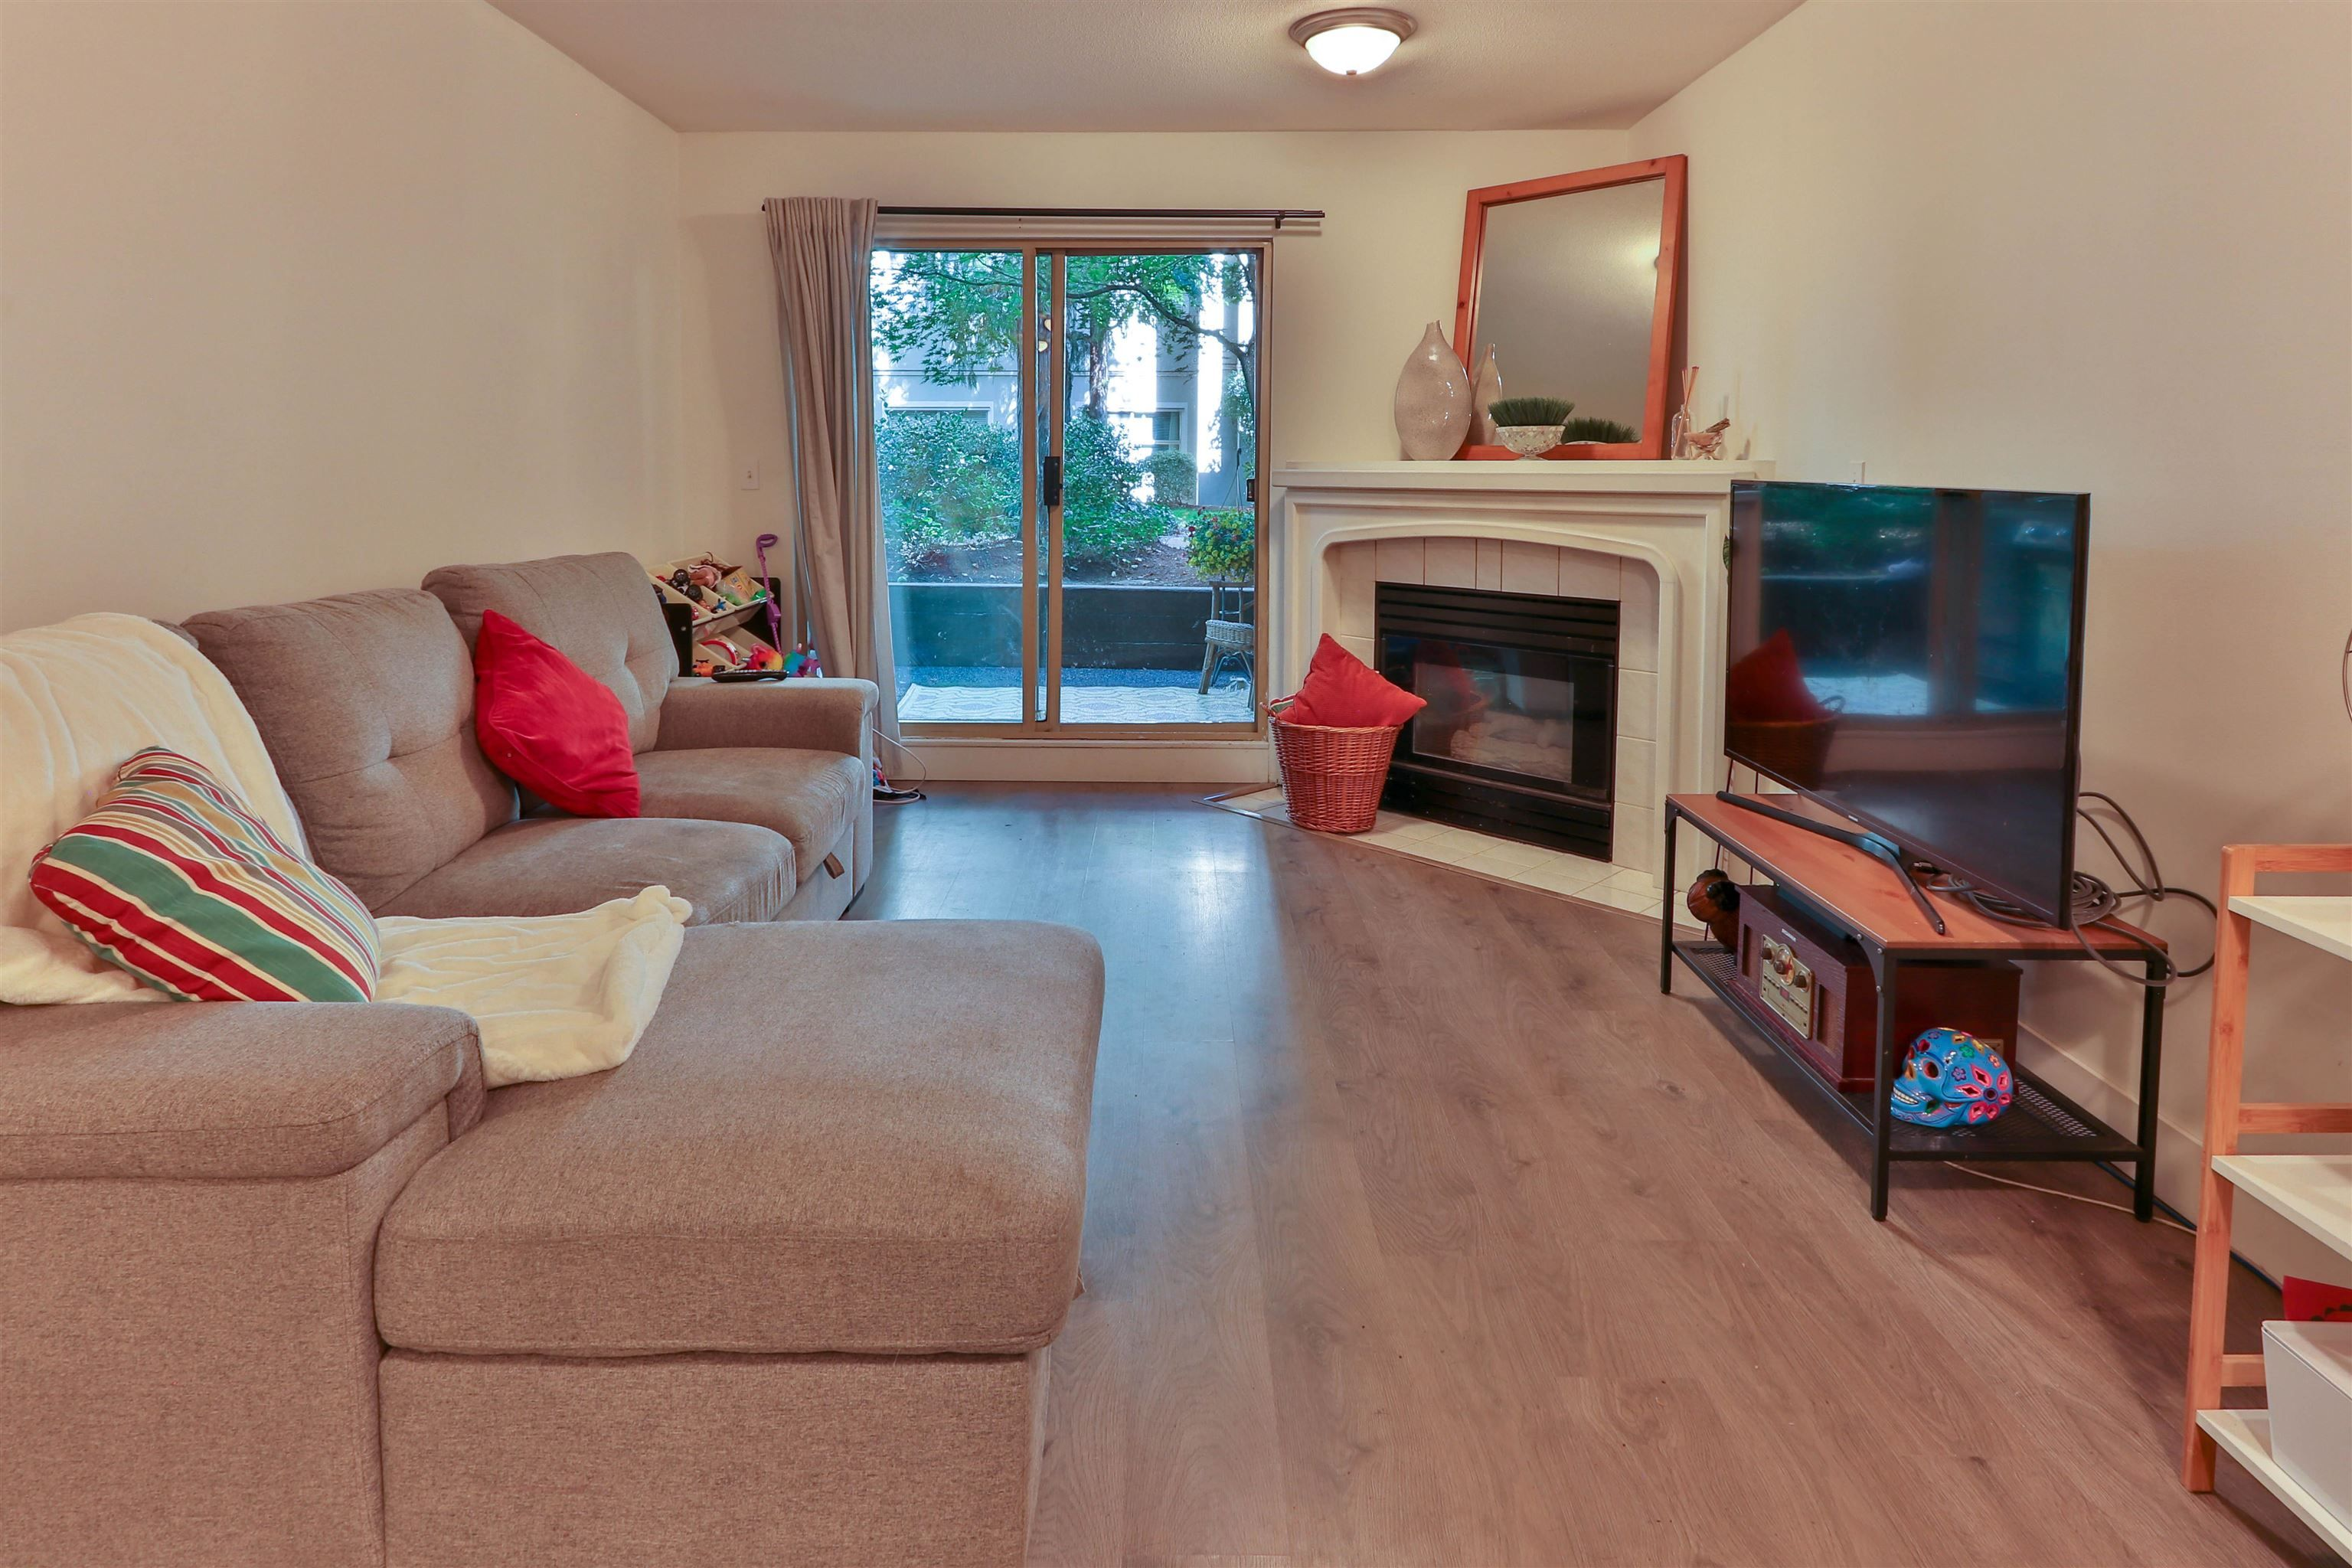 """Main Photo: 112a 2615 JANE Street in Port Coquitlam: Central Pt Coquitlam Condo for sale in """"BURLEIGH GREEN"""" : MLS®# R2617677"""